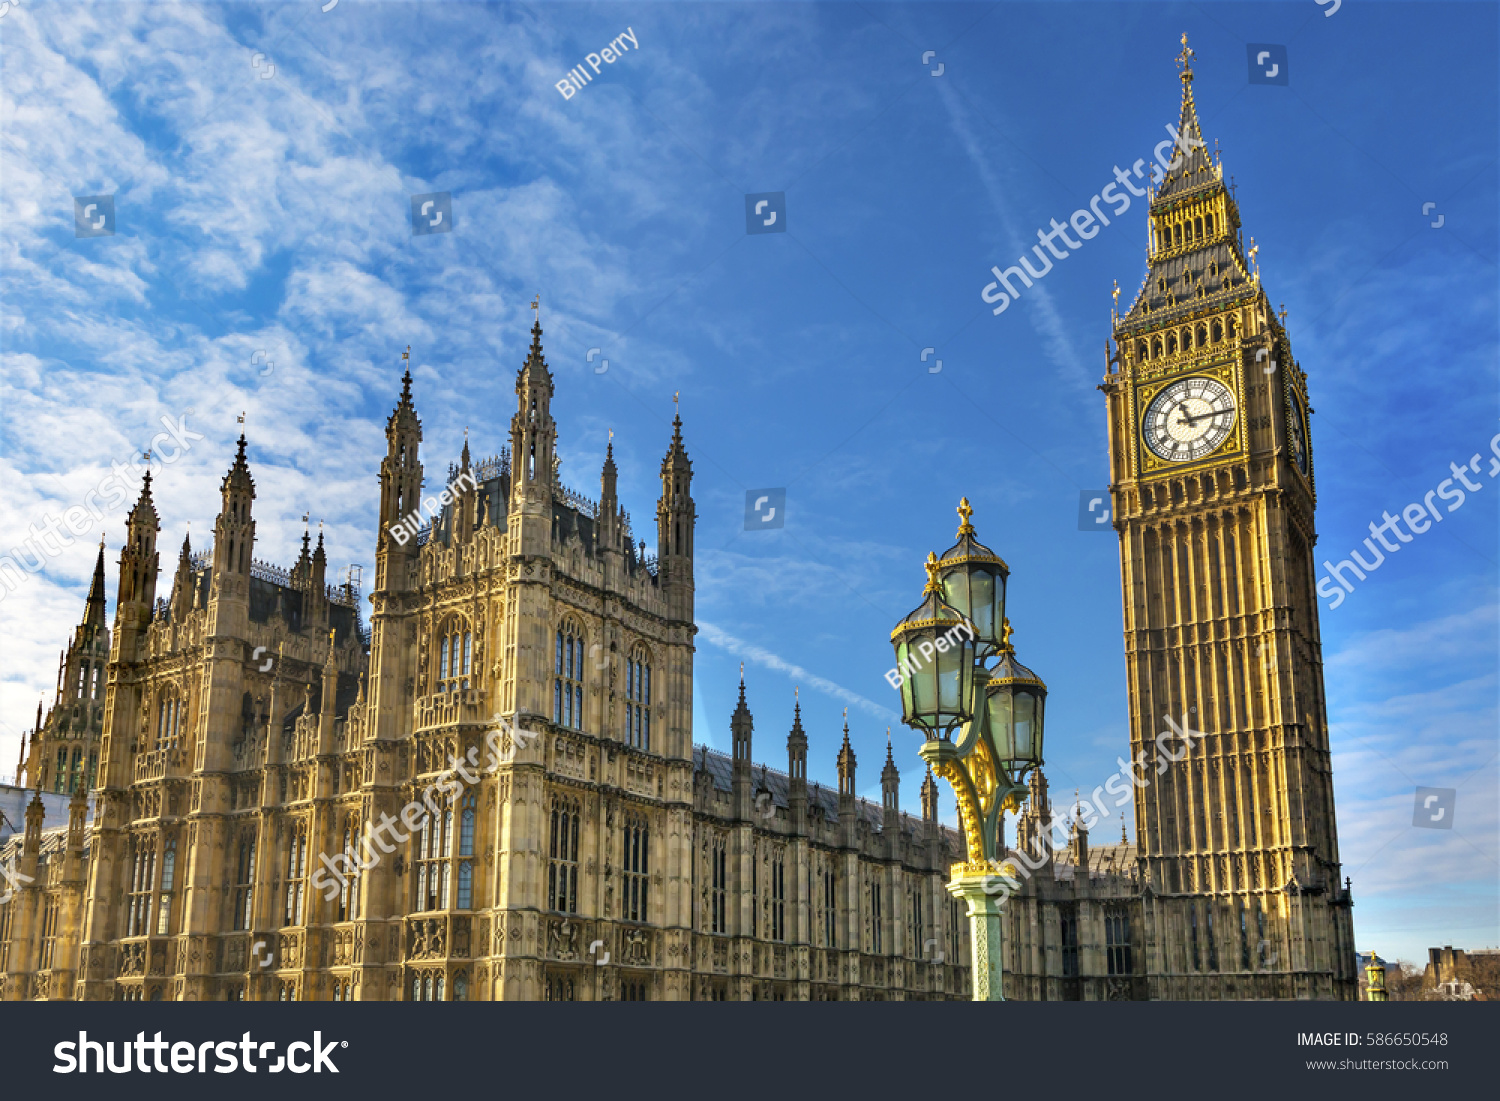 Big Ben Tower Houses Parliament Lamp Stock Photo 586650548